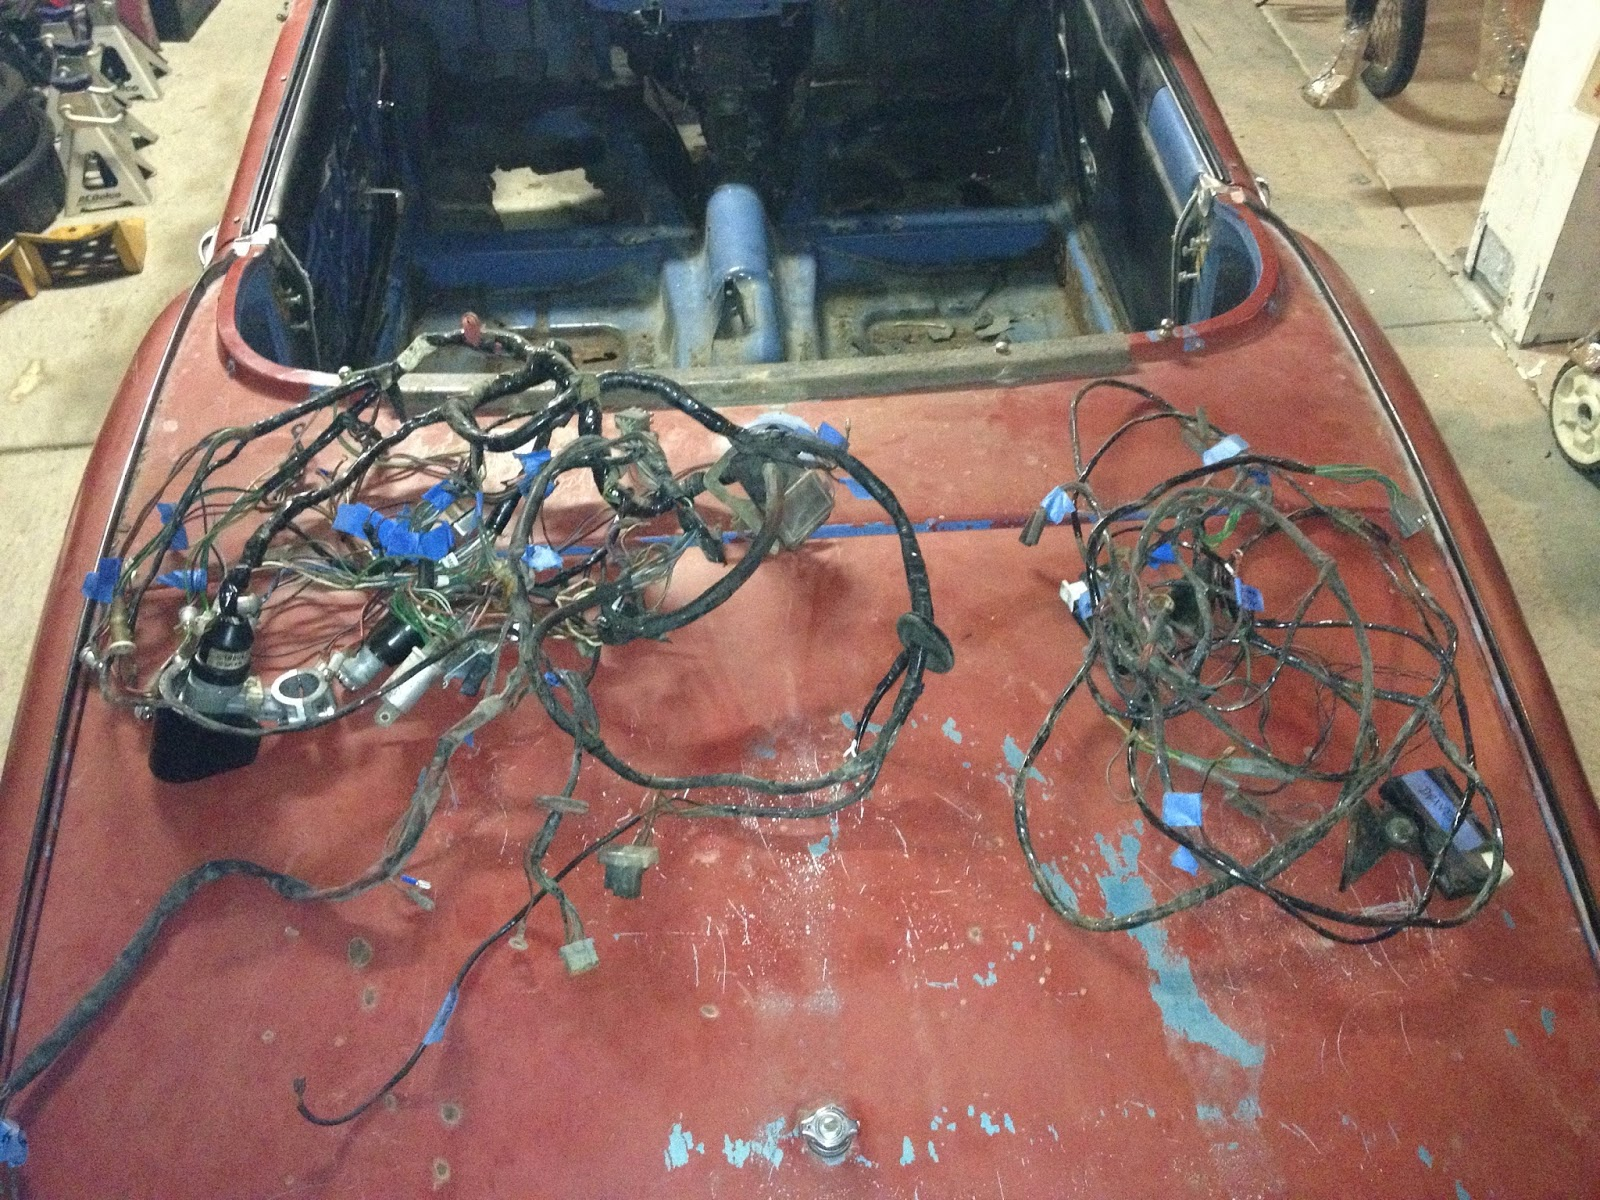 hight resolution of the wiring harnesses are out the one on the right is the rear harness with the seatbelt switches while the one on the left is the main harness with the